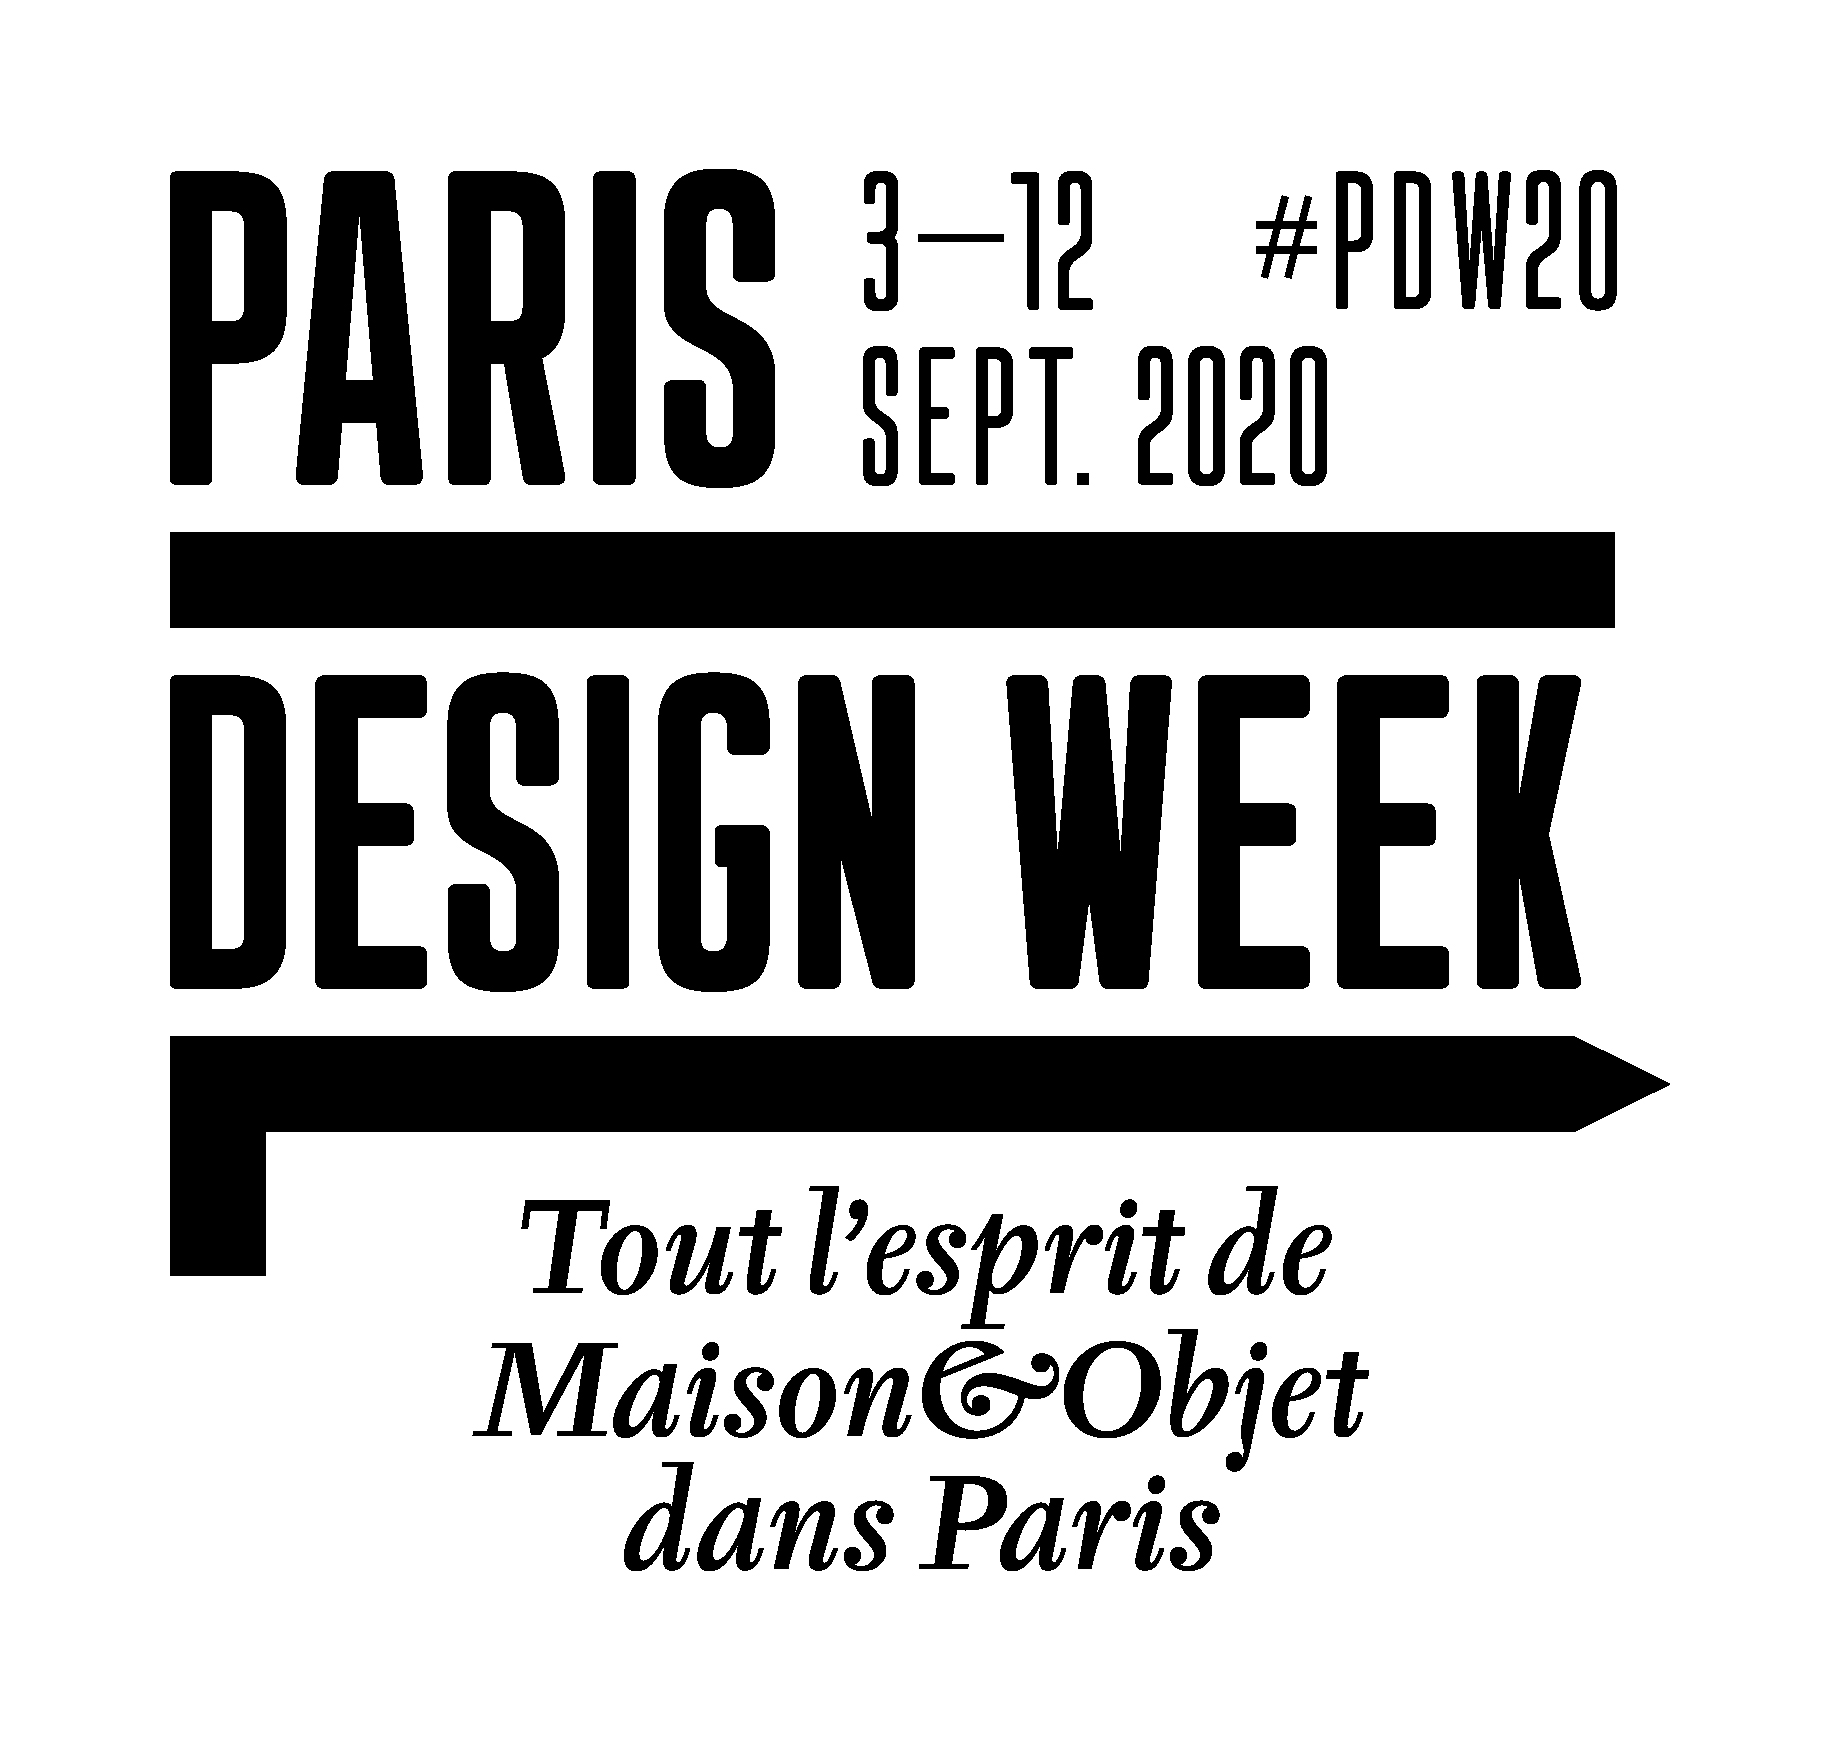 La Ville de Paris à la Paris Design Week